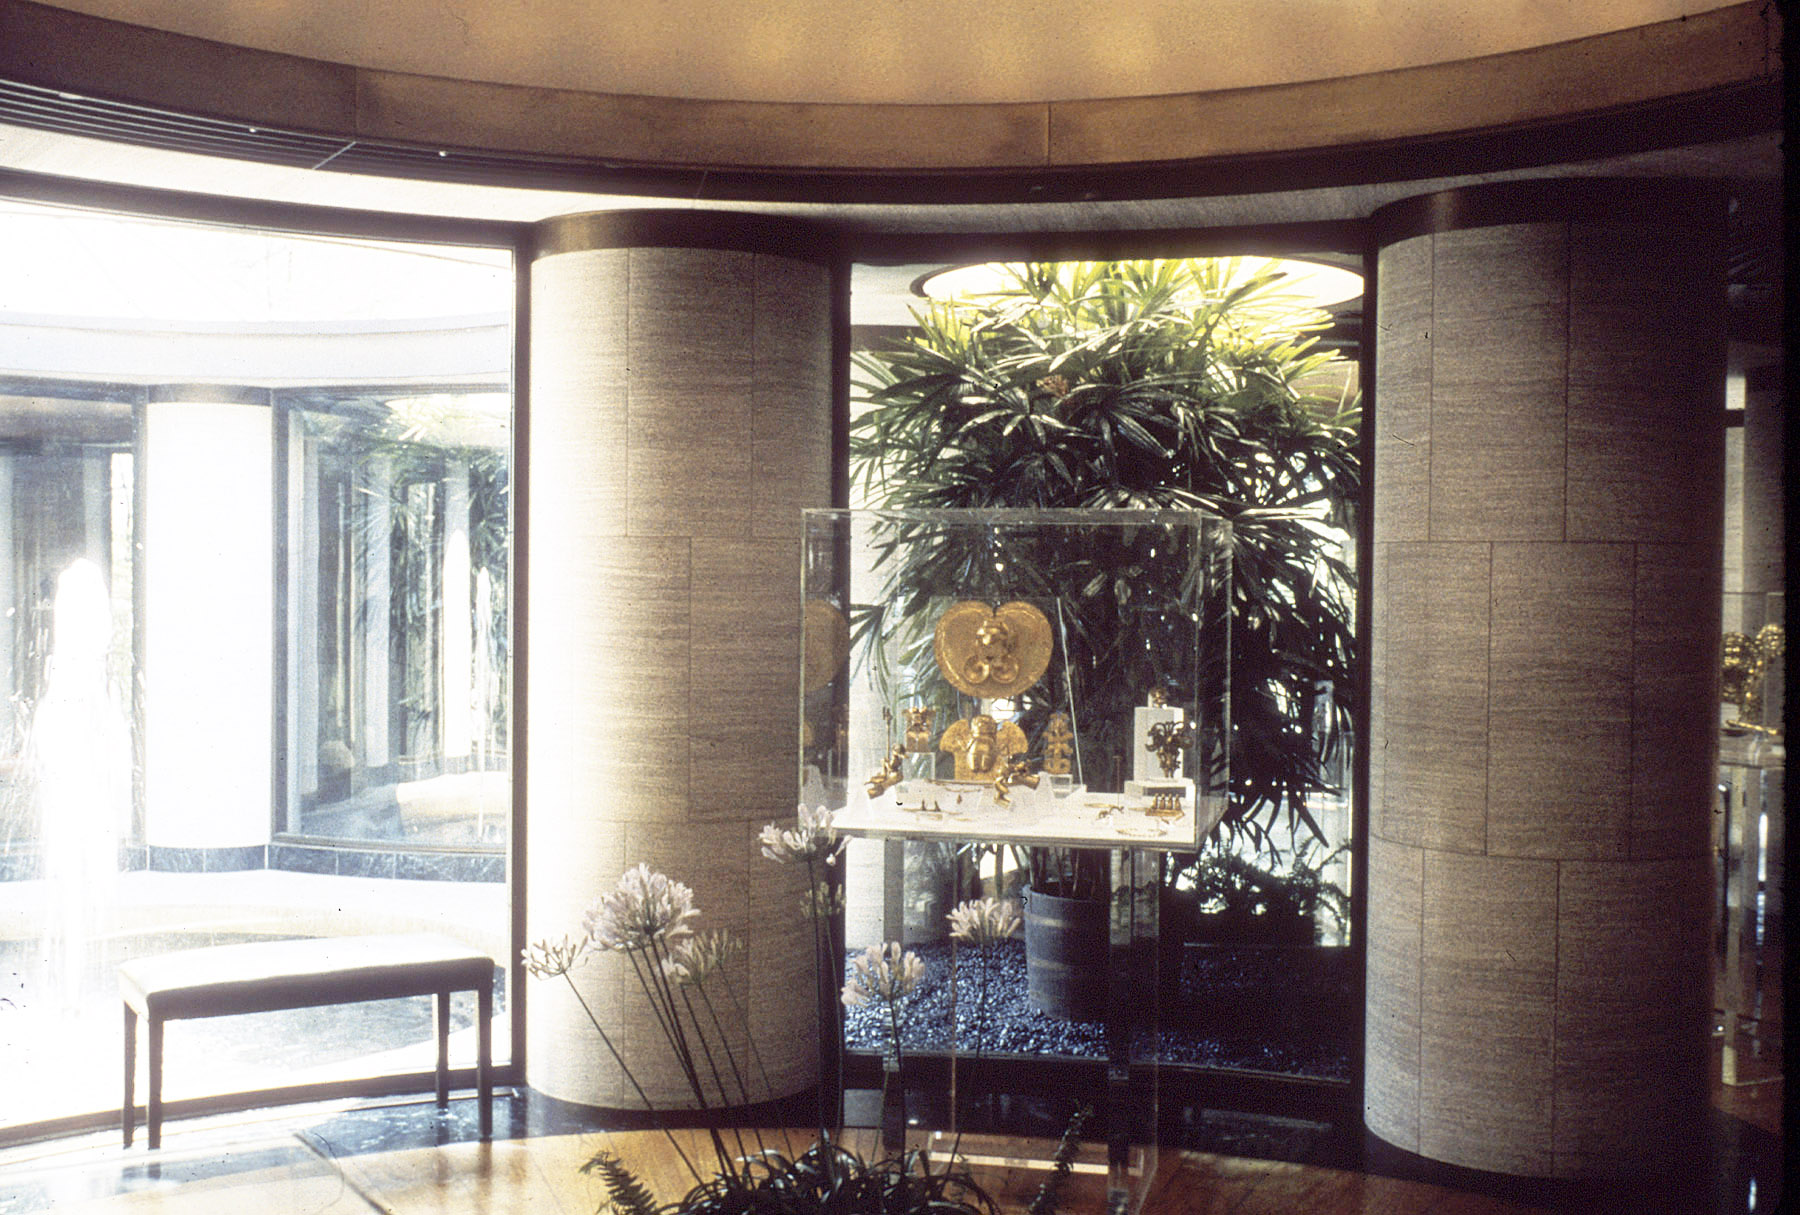 Philip Johnson at Dumbarton Oaks: Figure 33